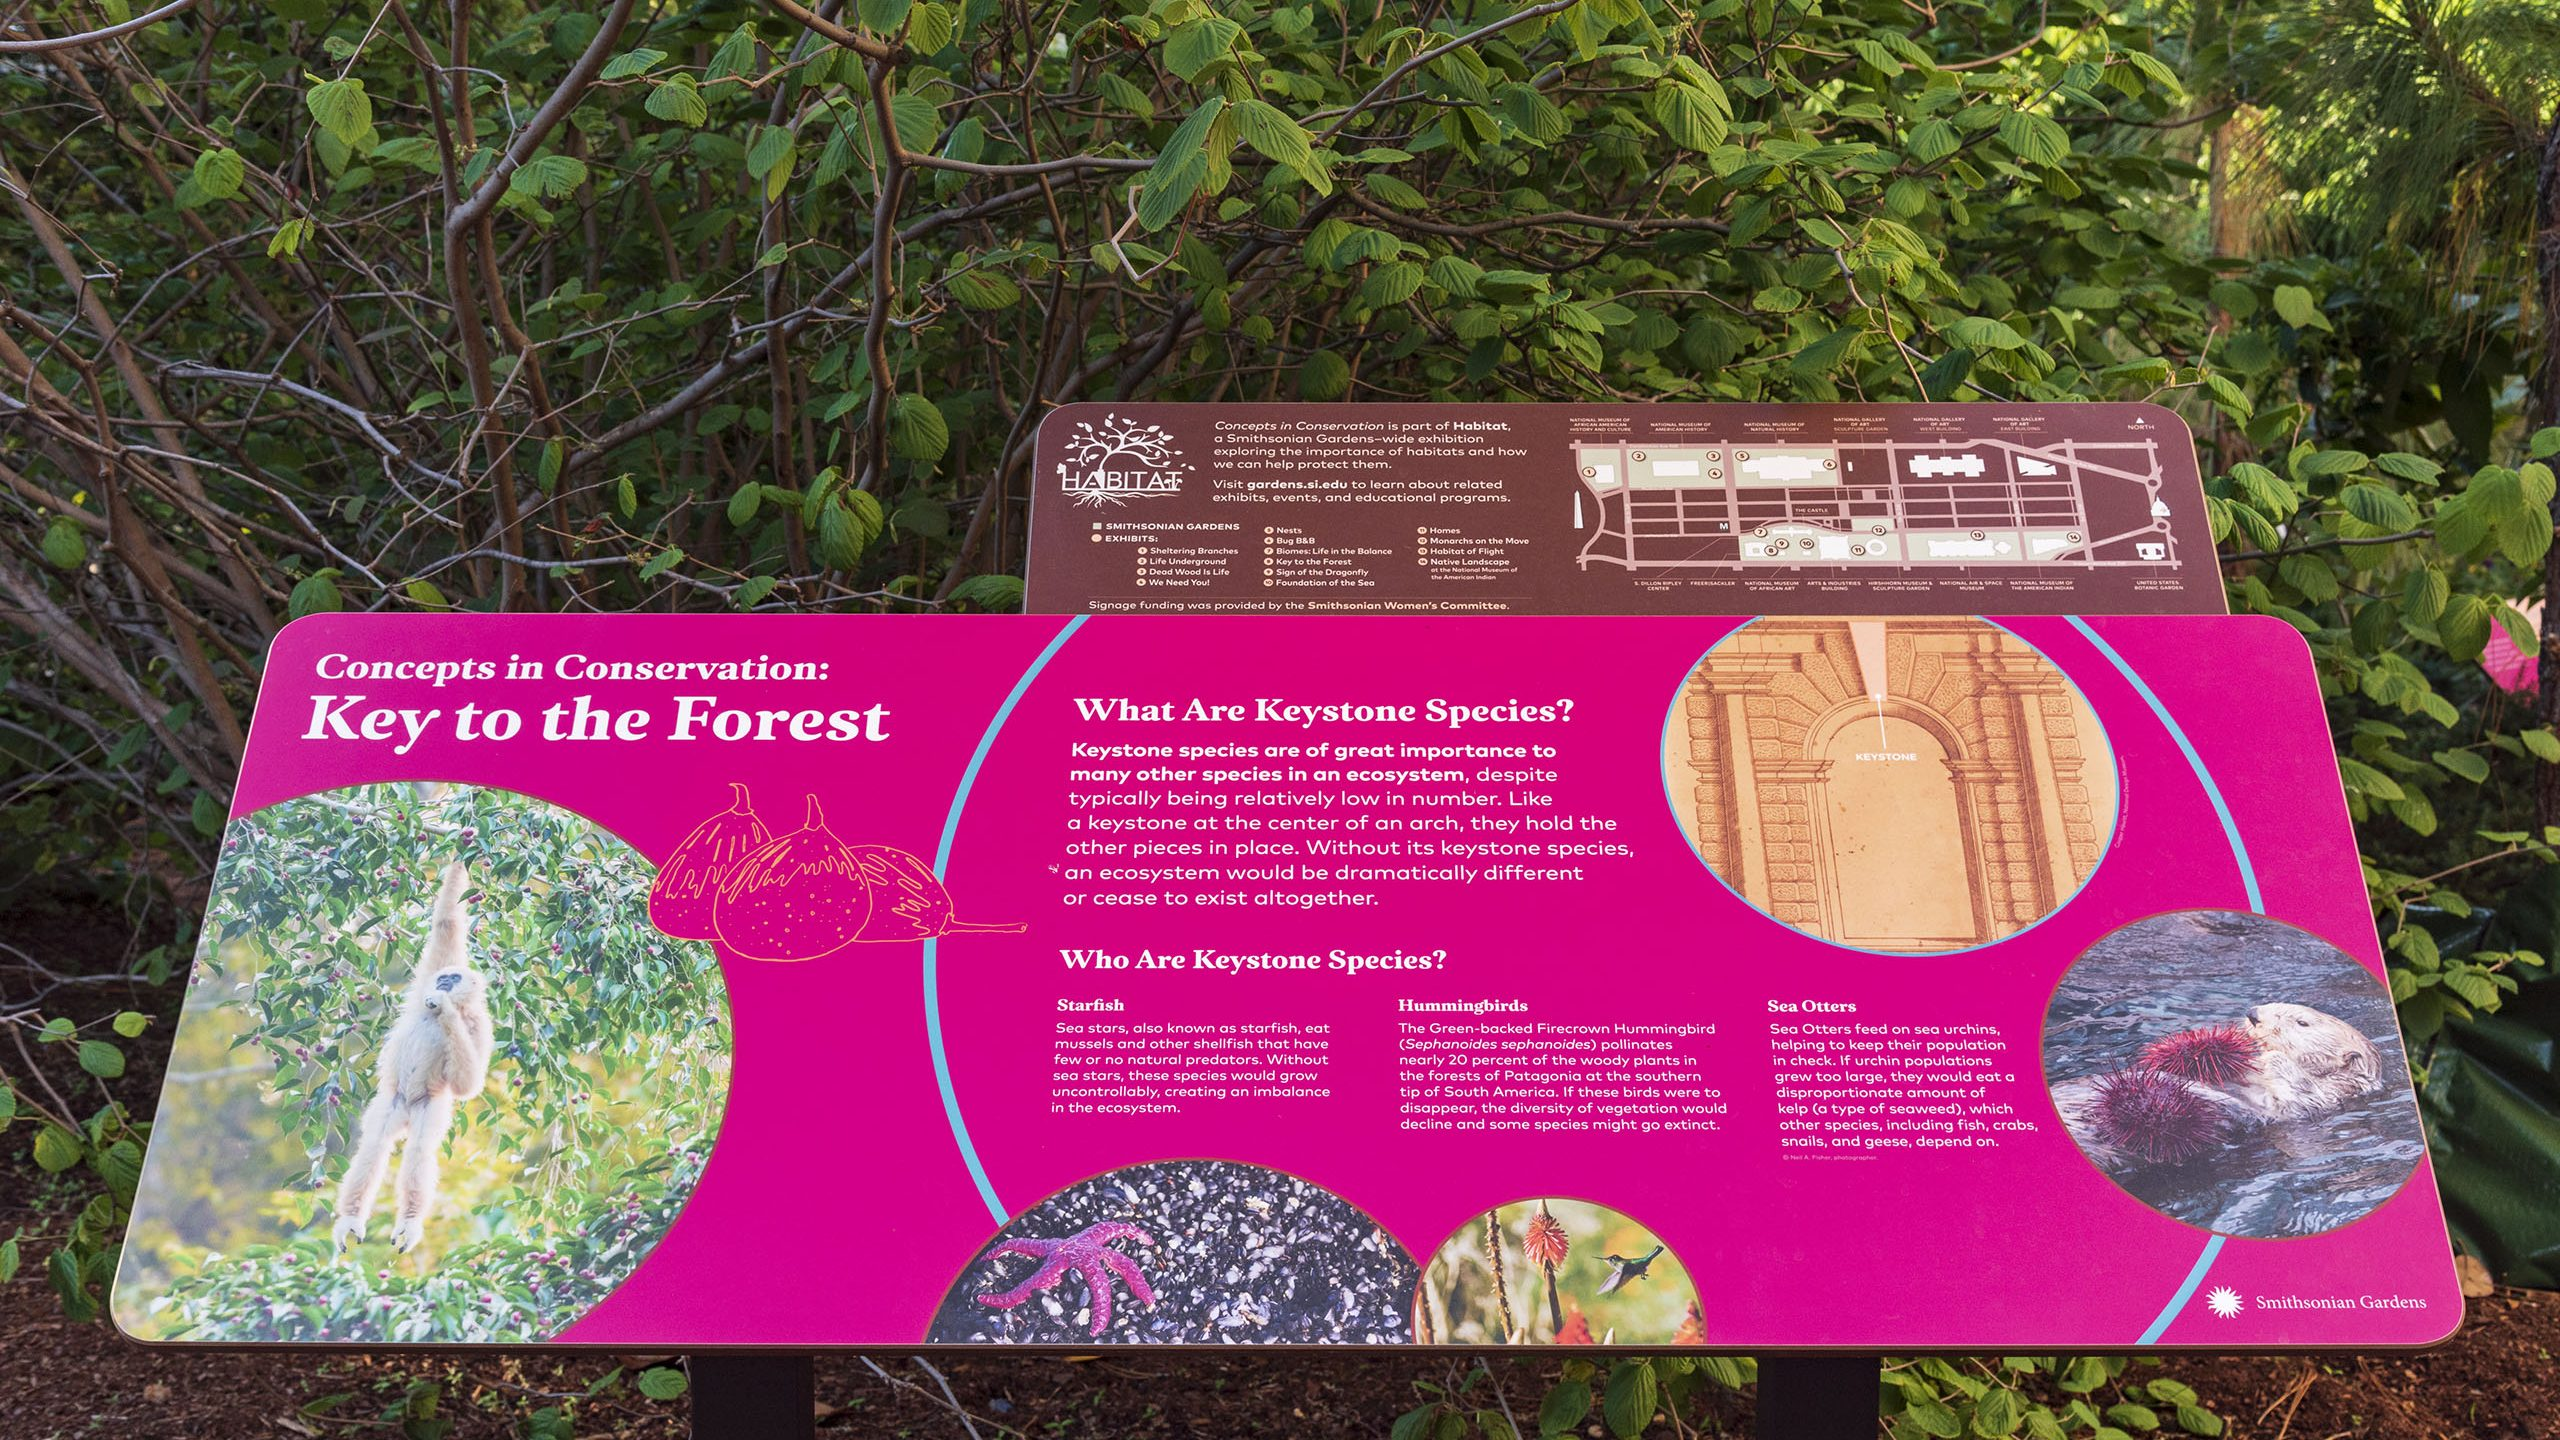 Habitat Exhibition, Concepts in Conservation, Key to the Forest in the Enid A. Haupt Garden